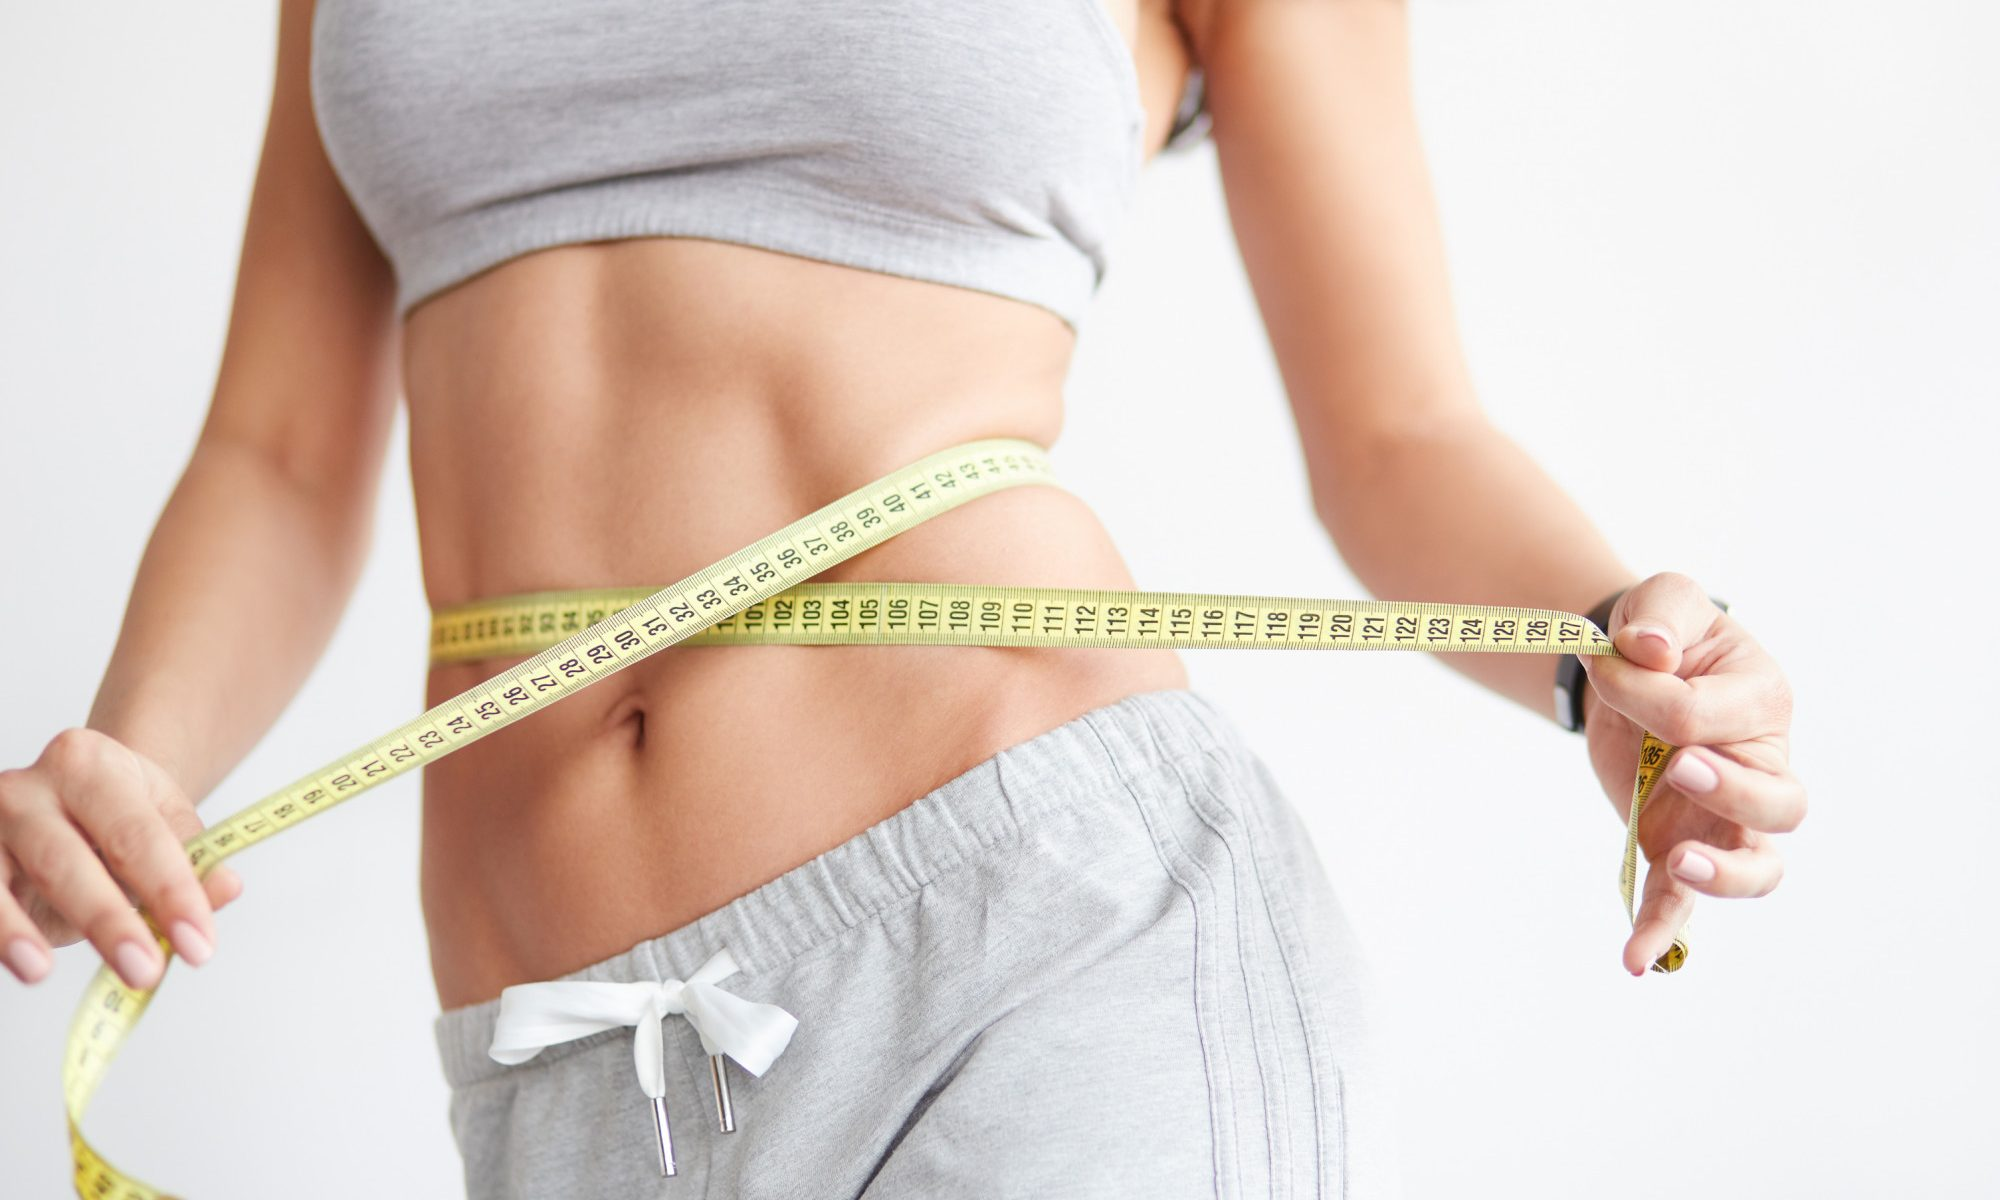 5 HCG Diet Tips to Help You Be Successful in Your Weight Loss Goals